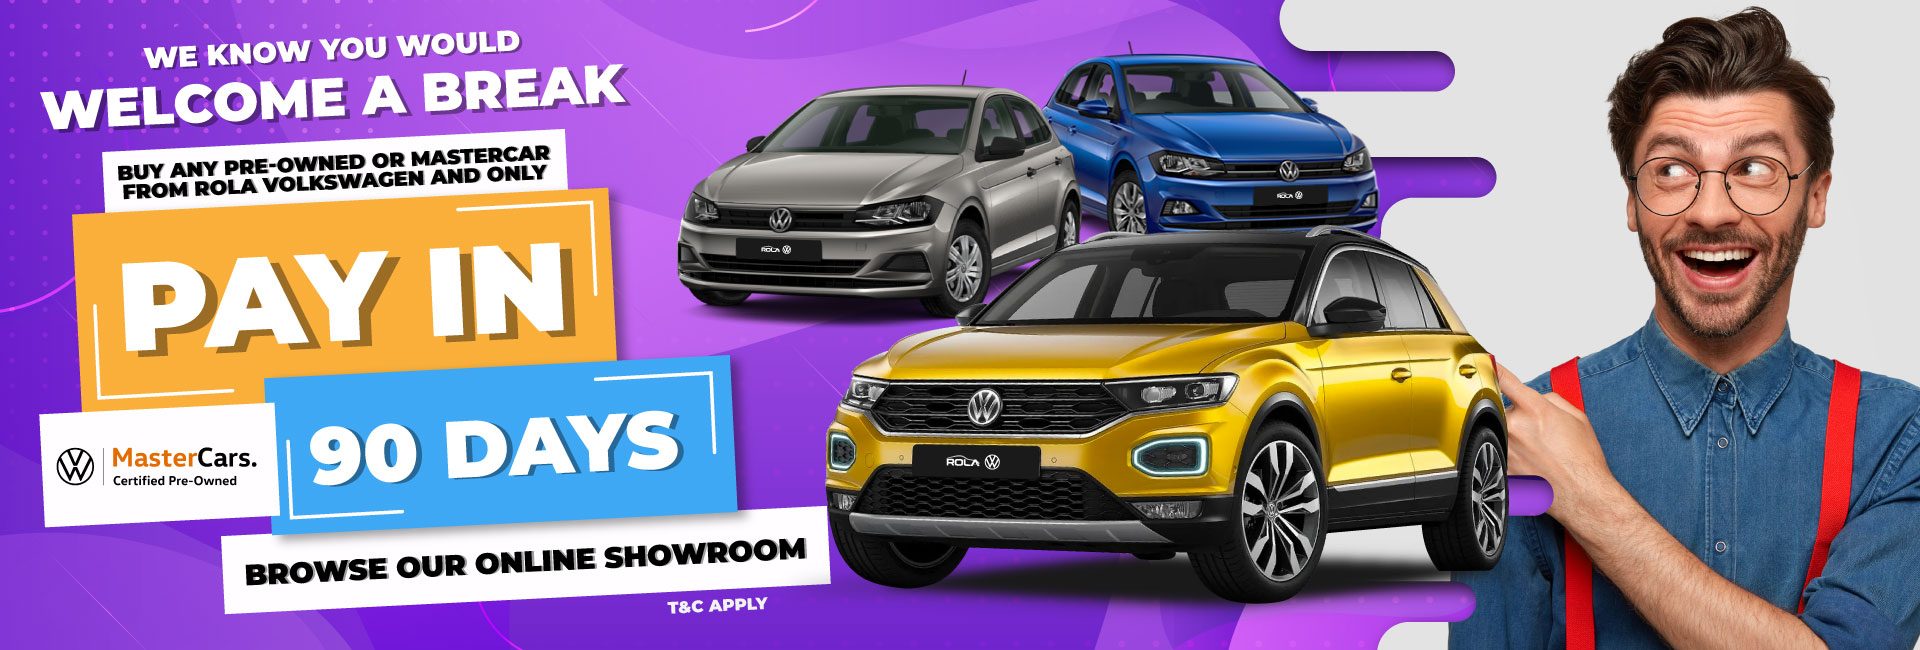 Rola VW Sell your car